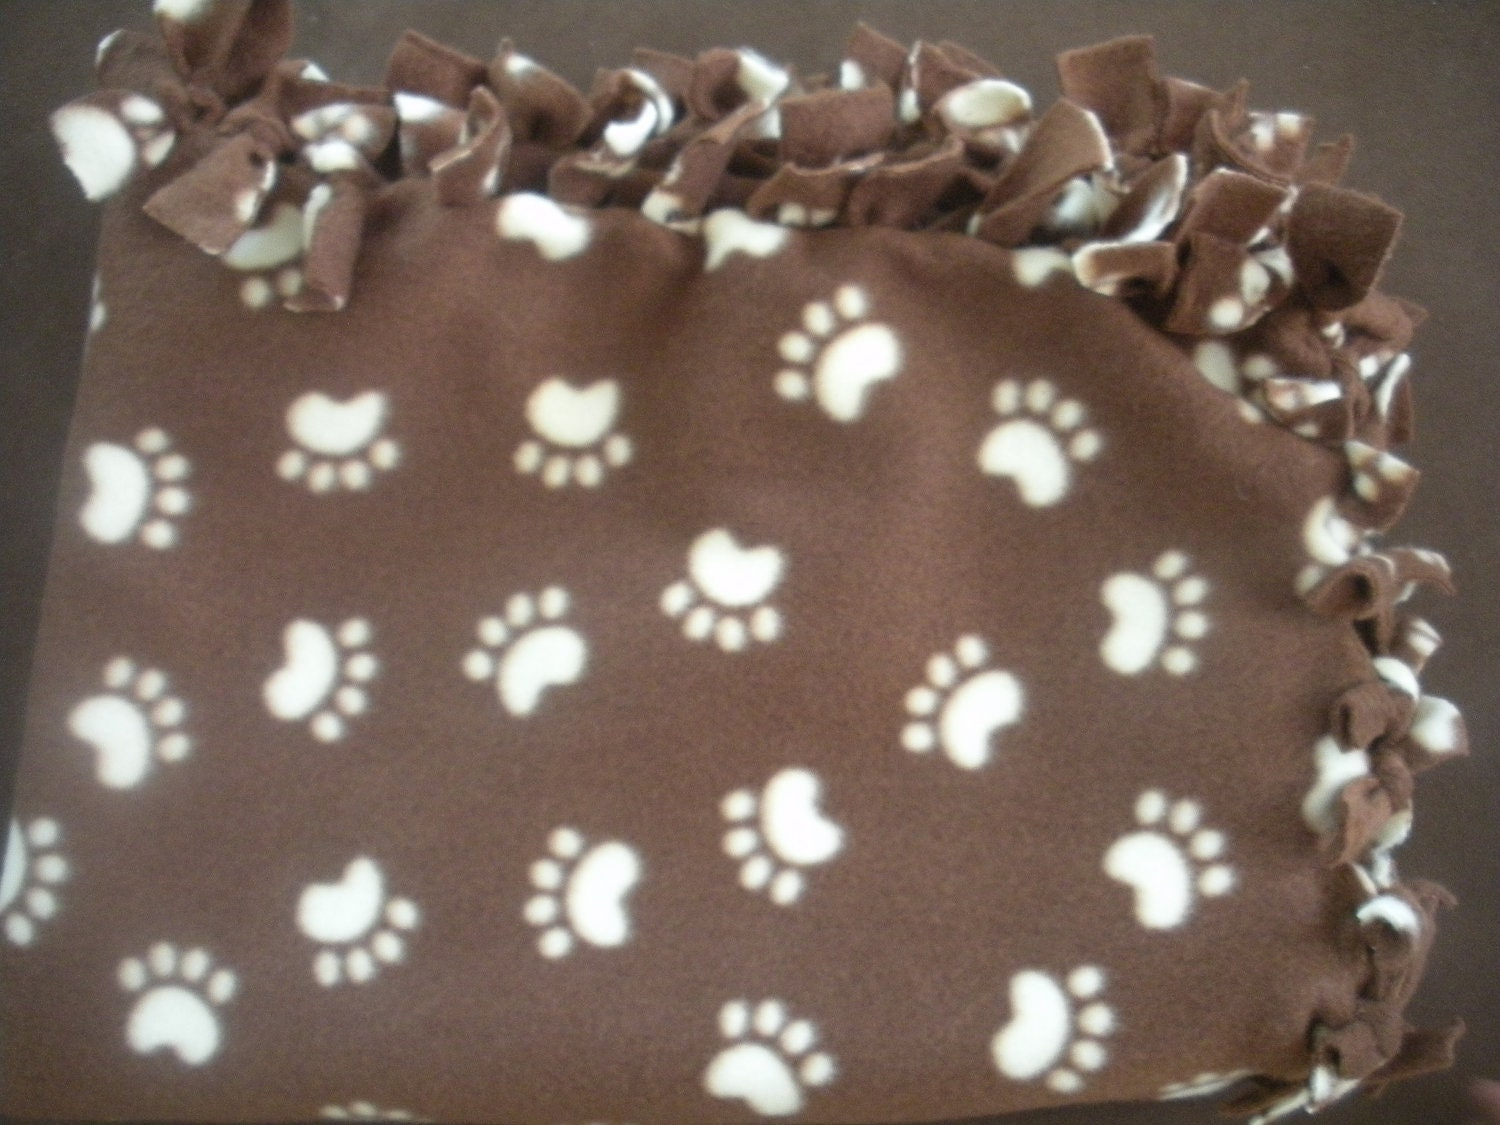 Paw Prints Dog Blanket Brown And Creme Colored Blanket